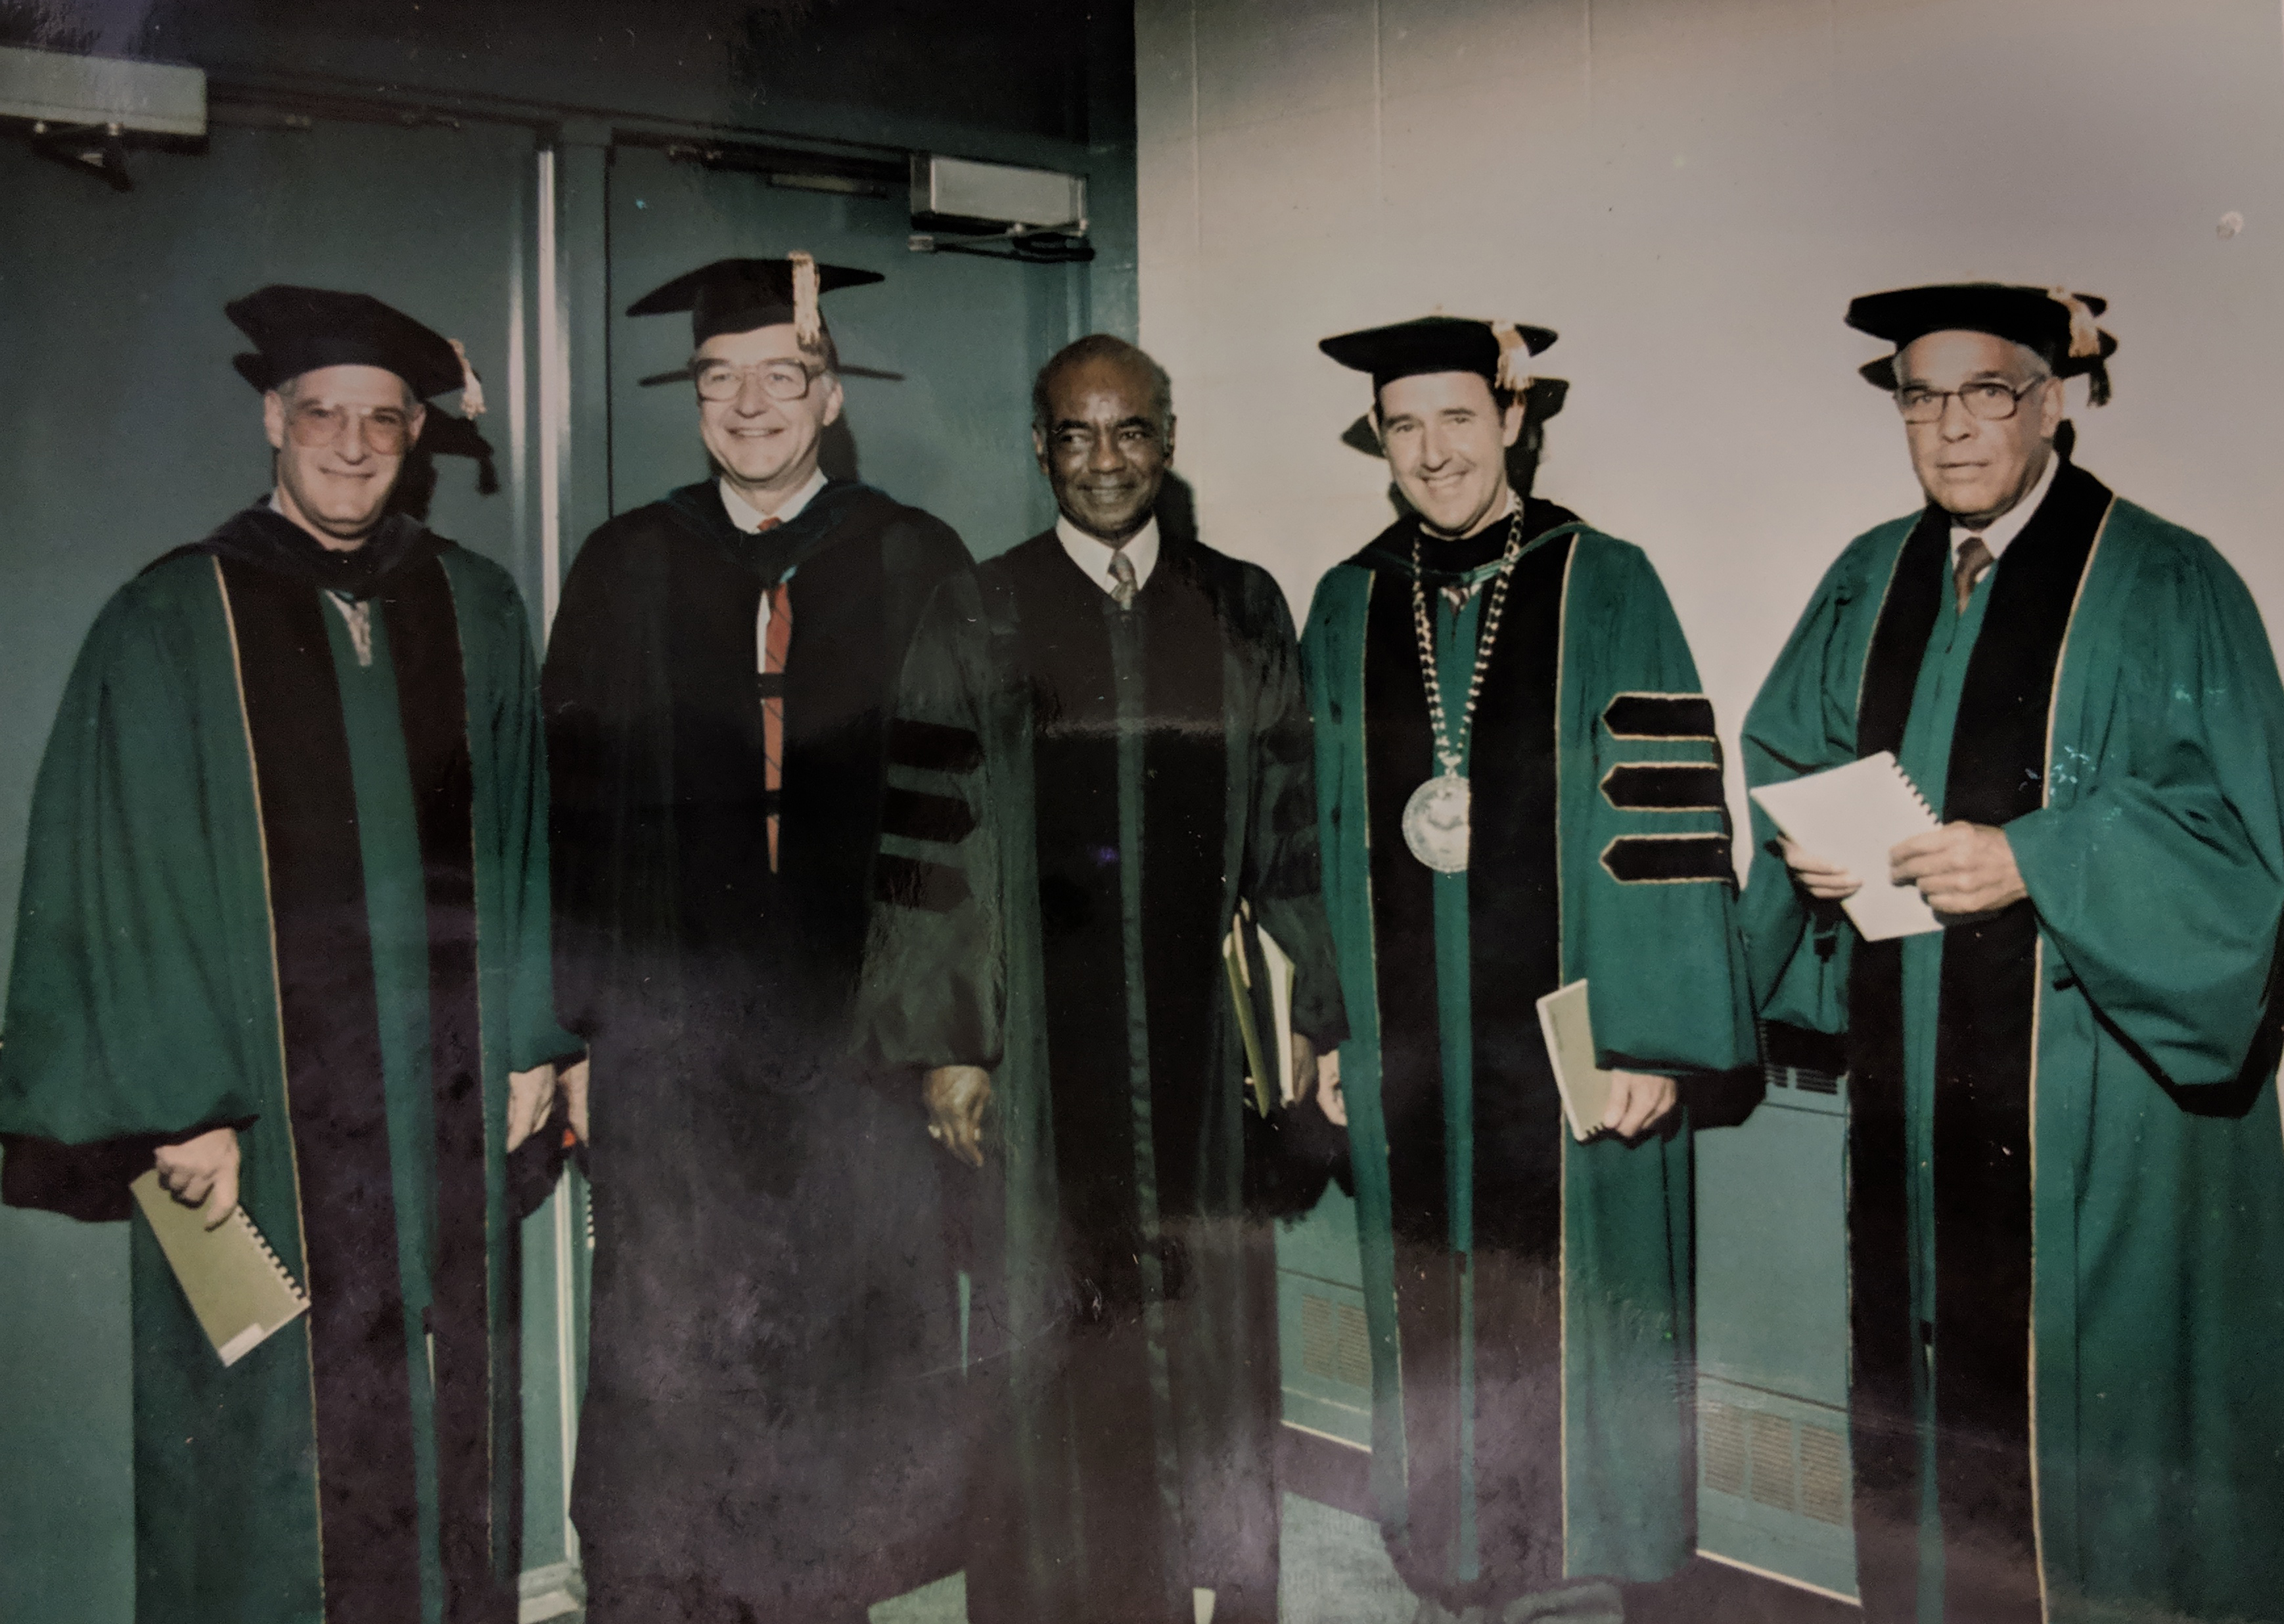 C.J. McLin, Jr. (center), on the occasion of receiving an honorary Doctor of Humane Letters degree from Wright State University; WSU President Paige Mulholland is second from right.